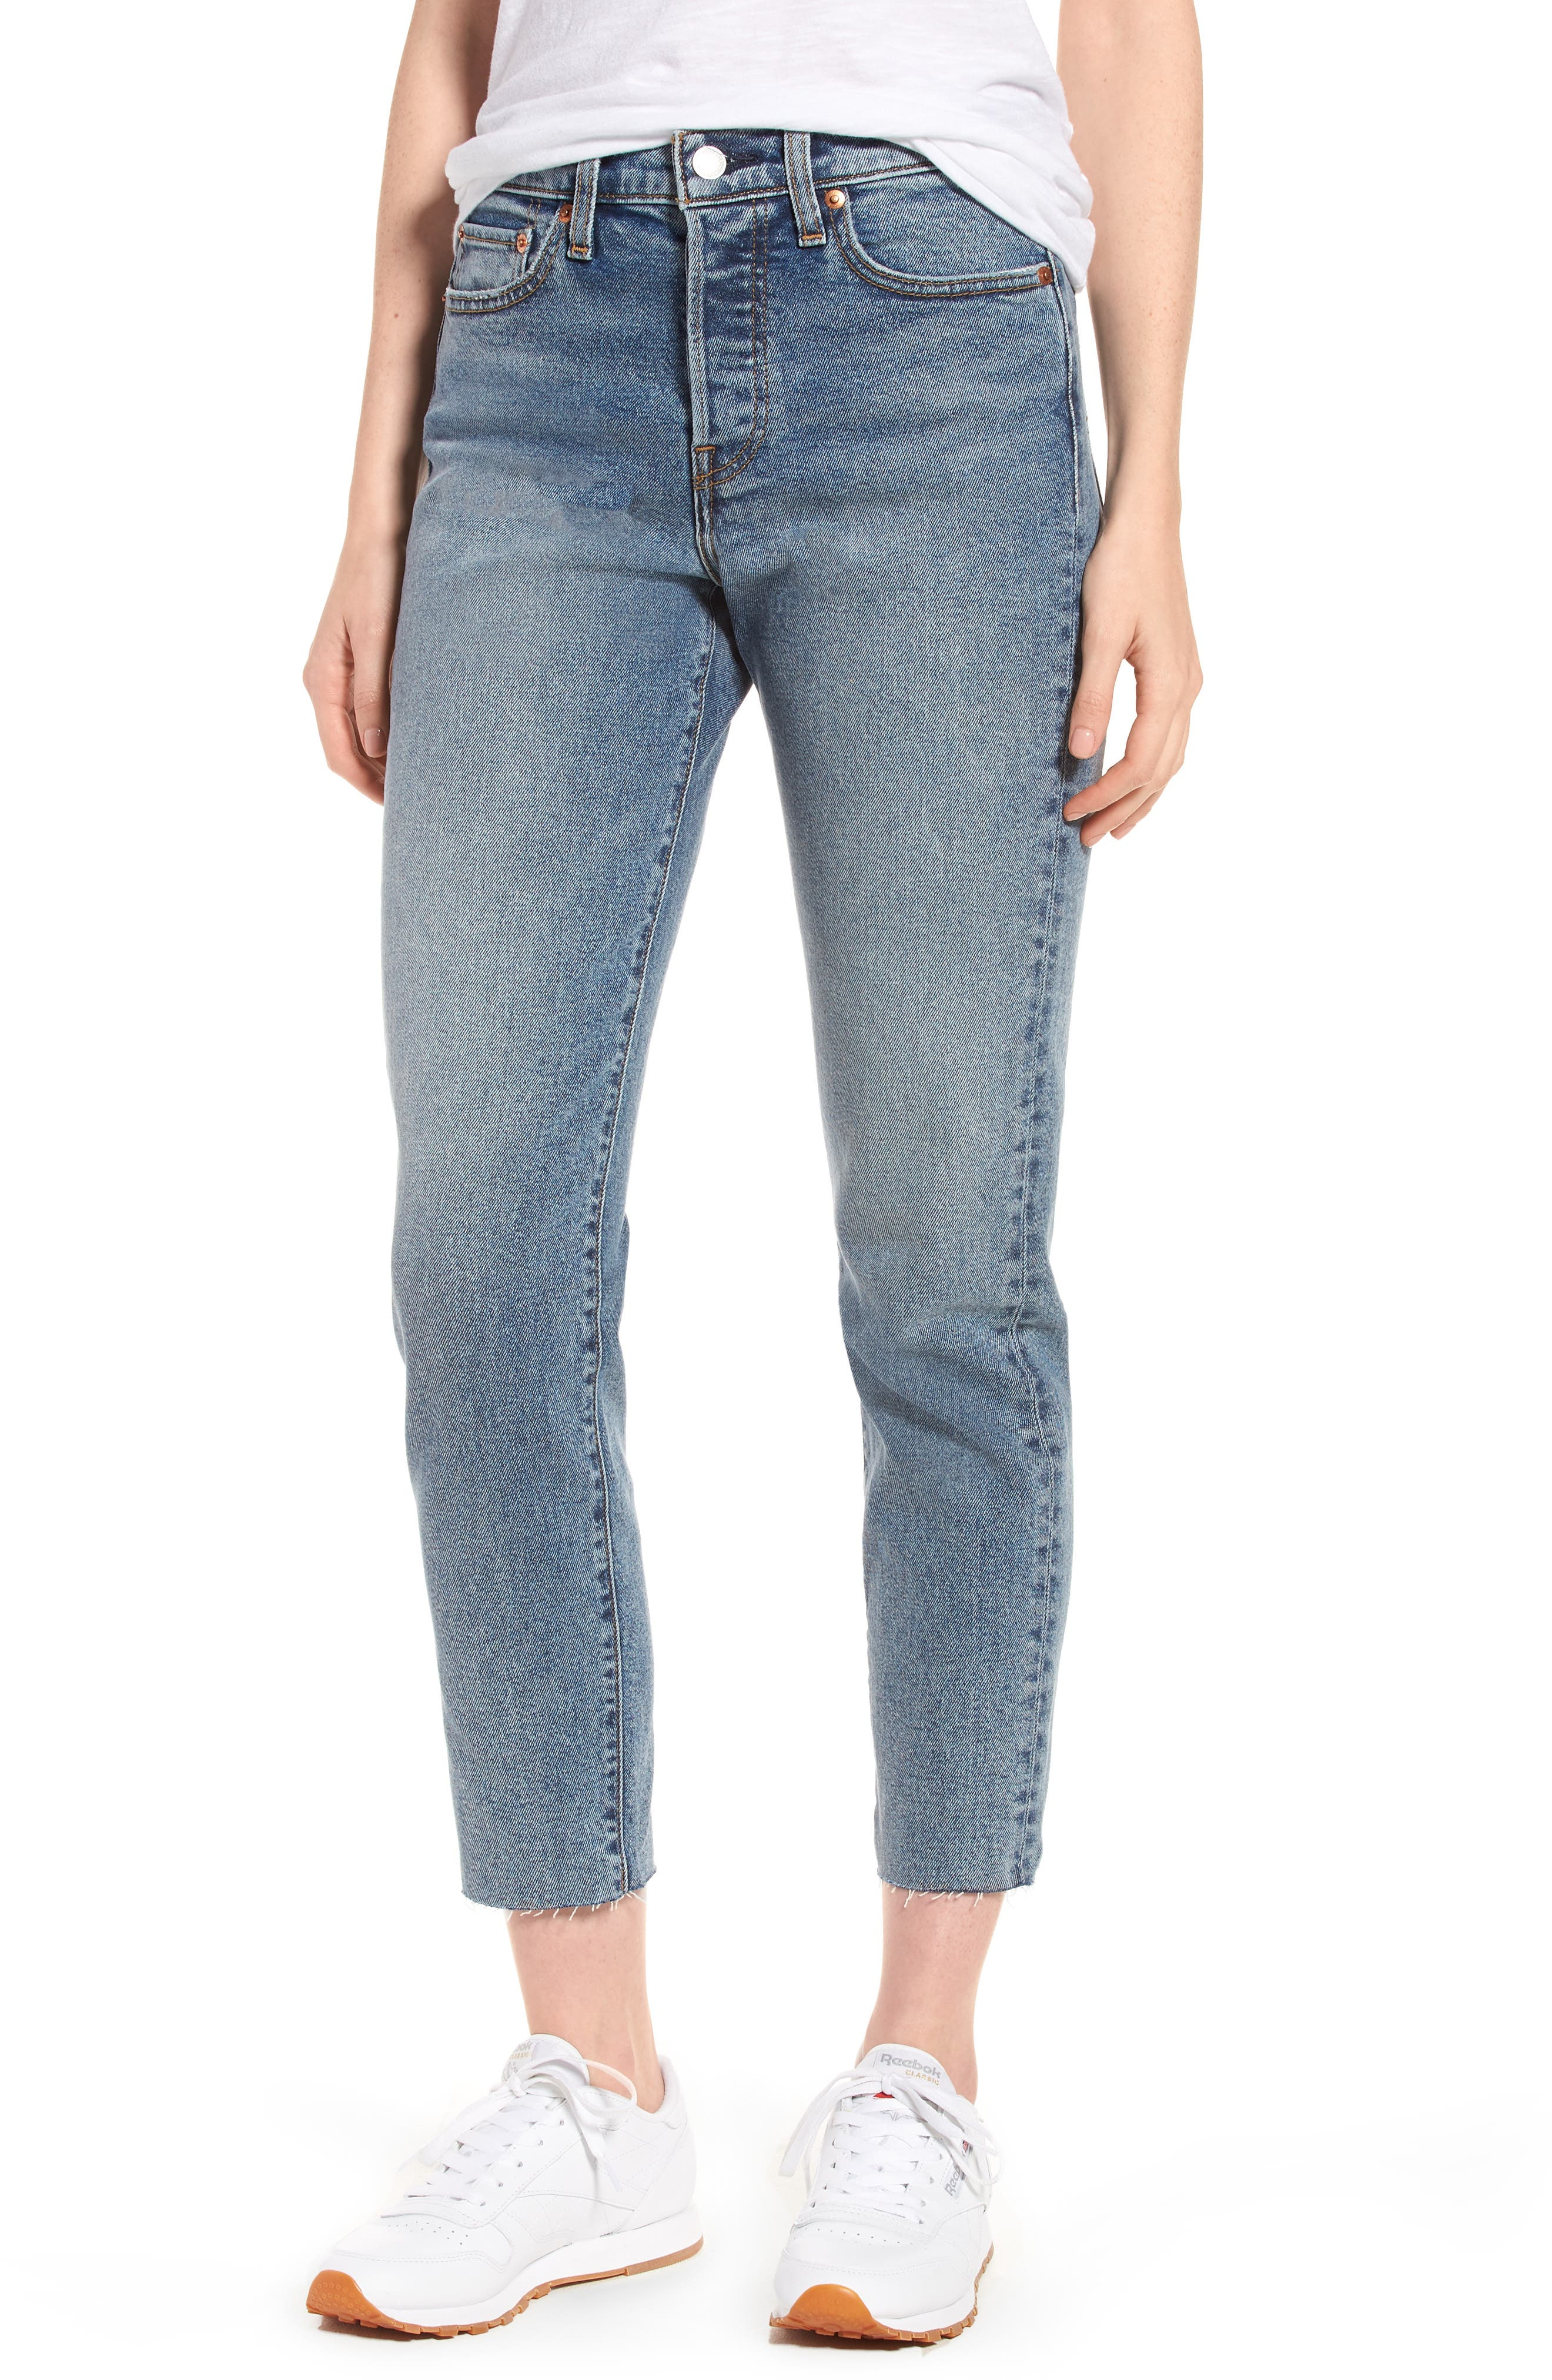 Wedgie Icon Fit High Waist Crop Jeans,                         Main,                         color, 401